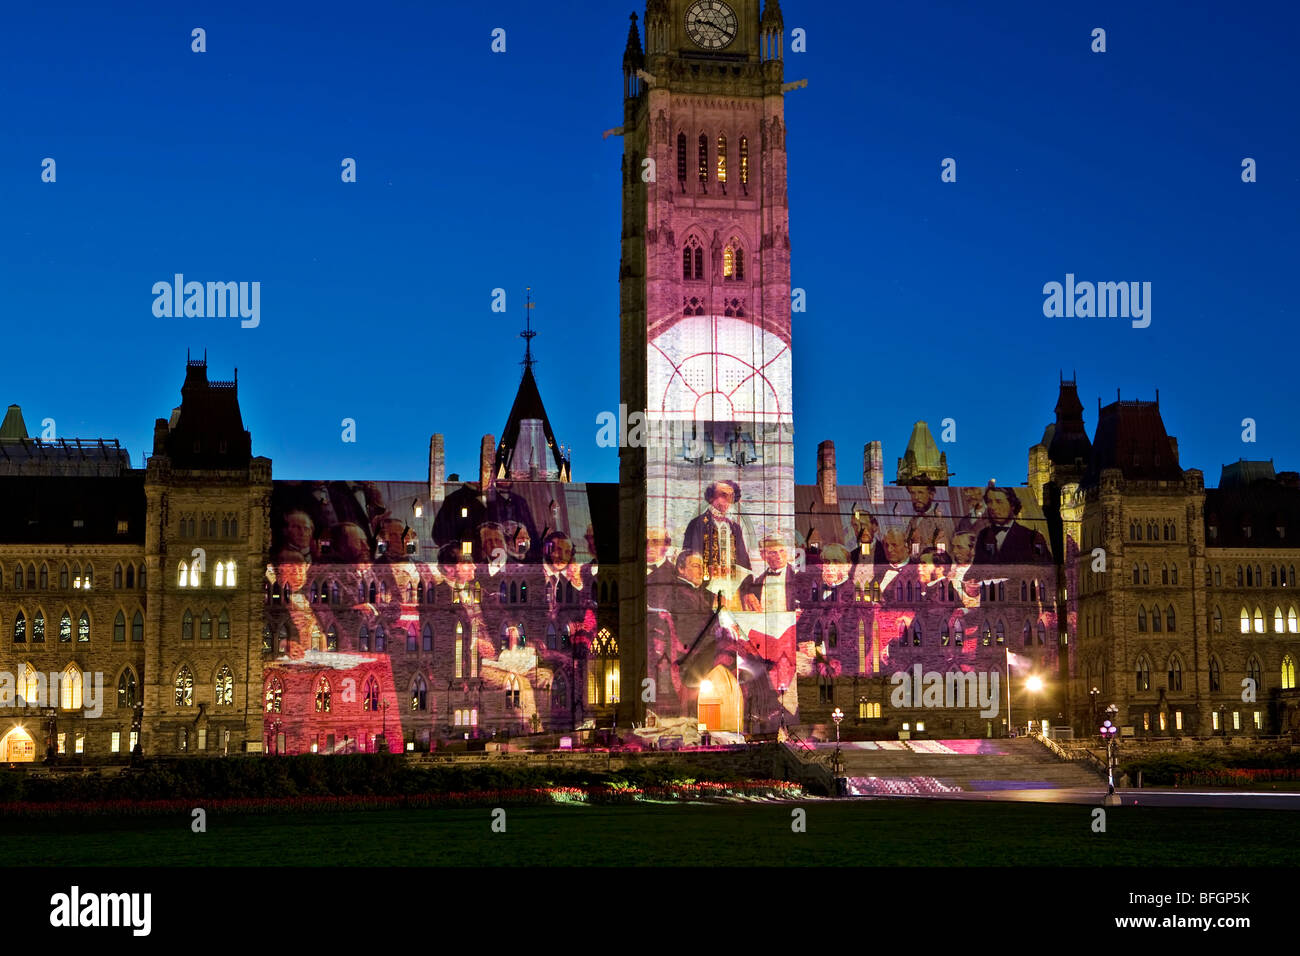 Fathers of Confederation projected on Parliament Building, Ottawa, Ontario, Canada - Stock Image